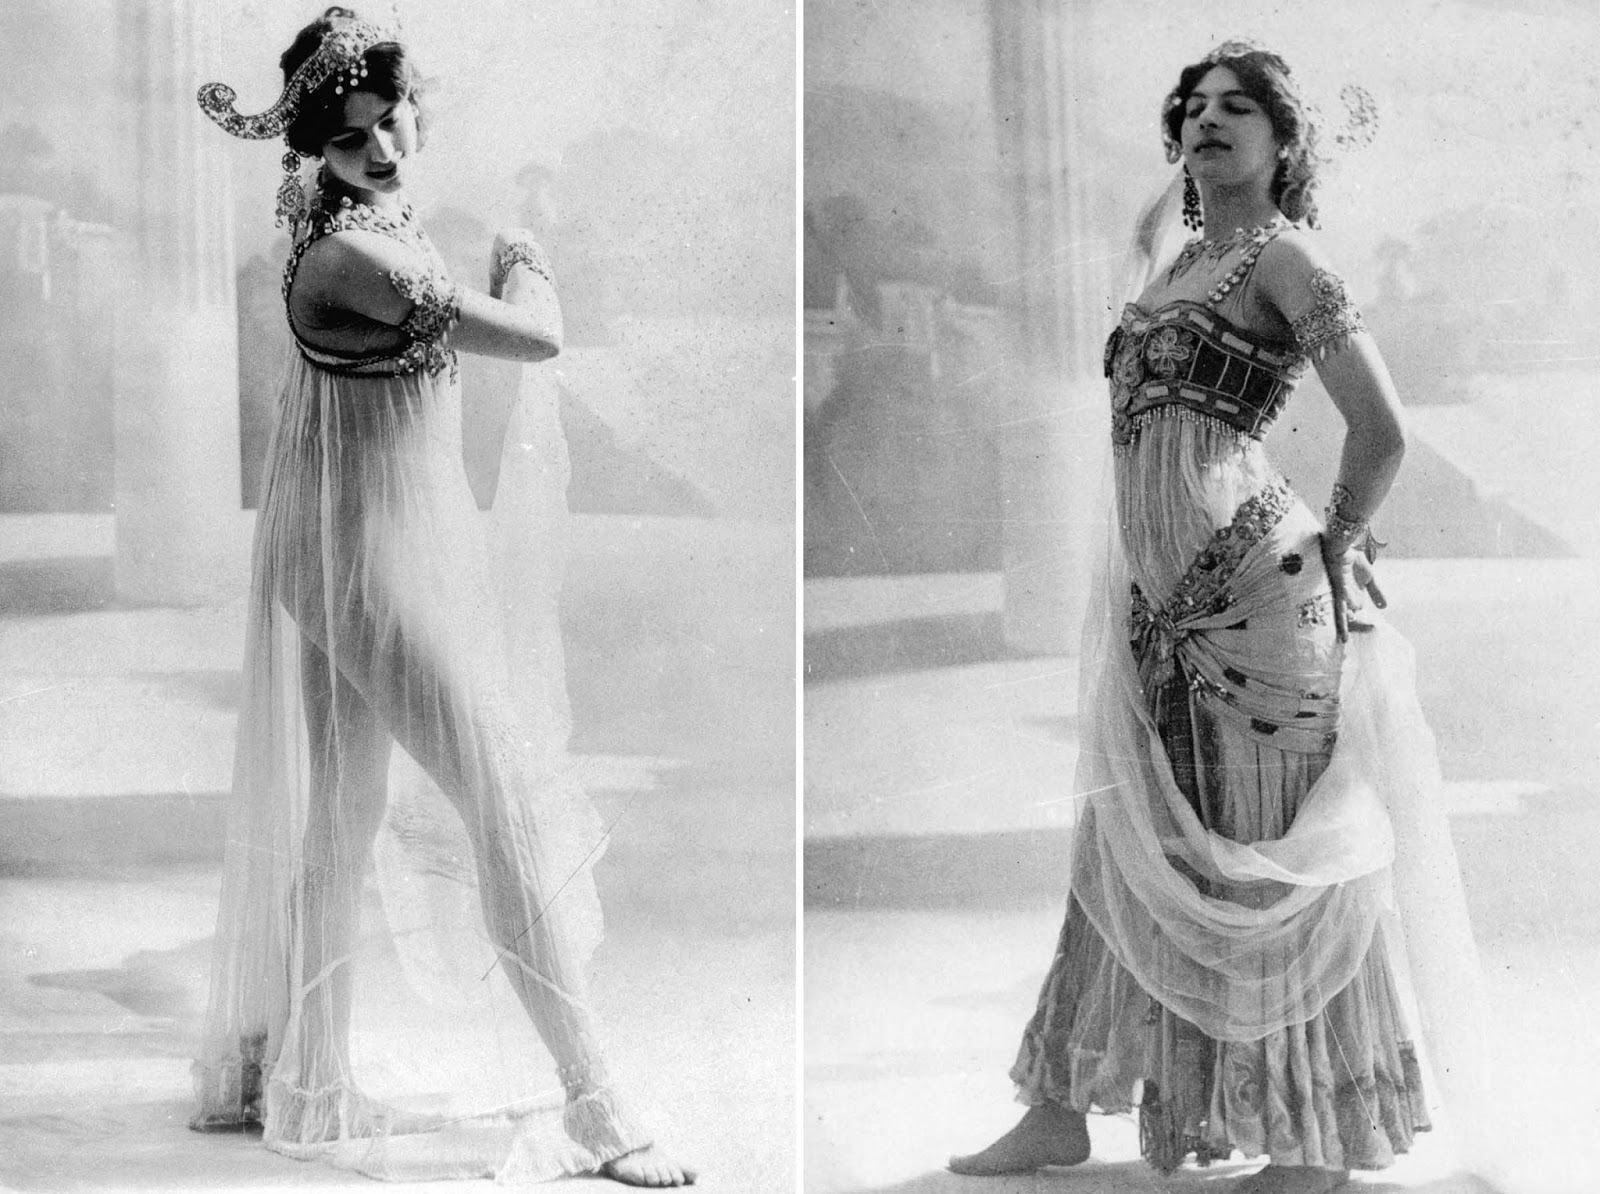 By 1905, Mata Hari began to win fame as an exotic dancer.